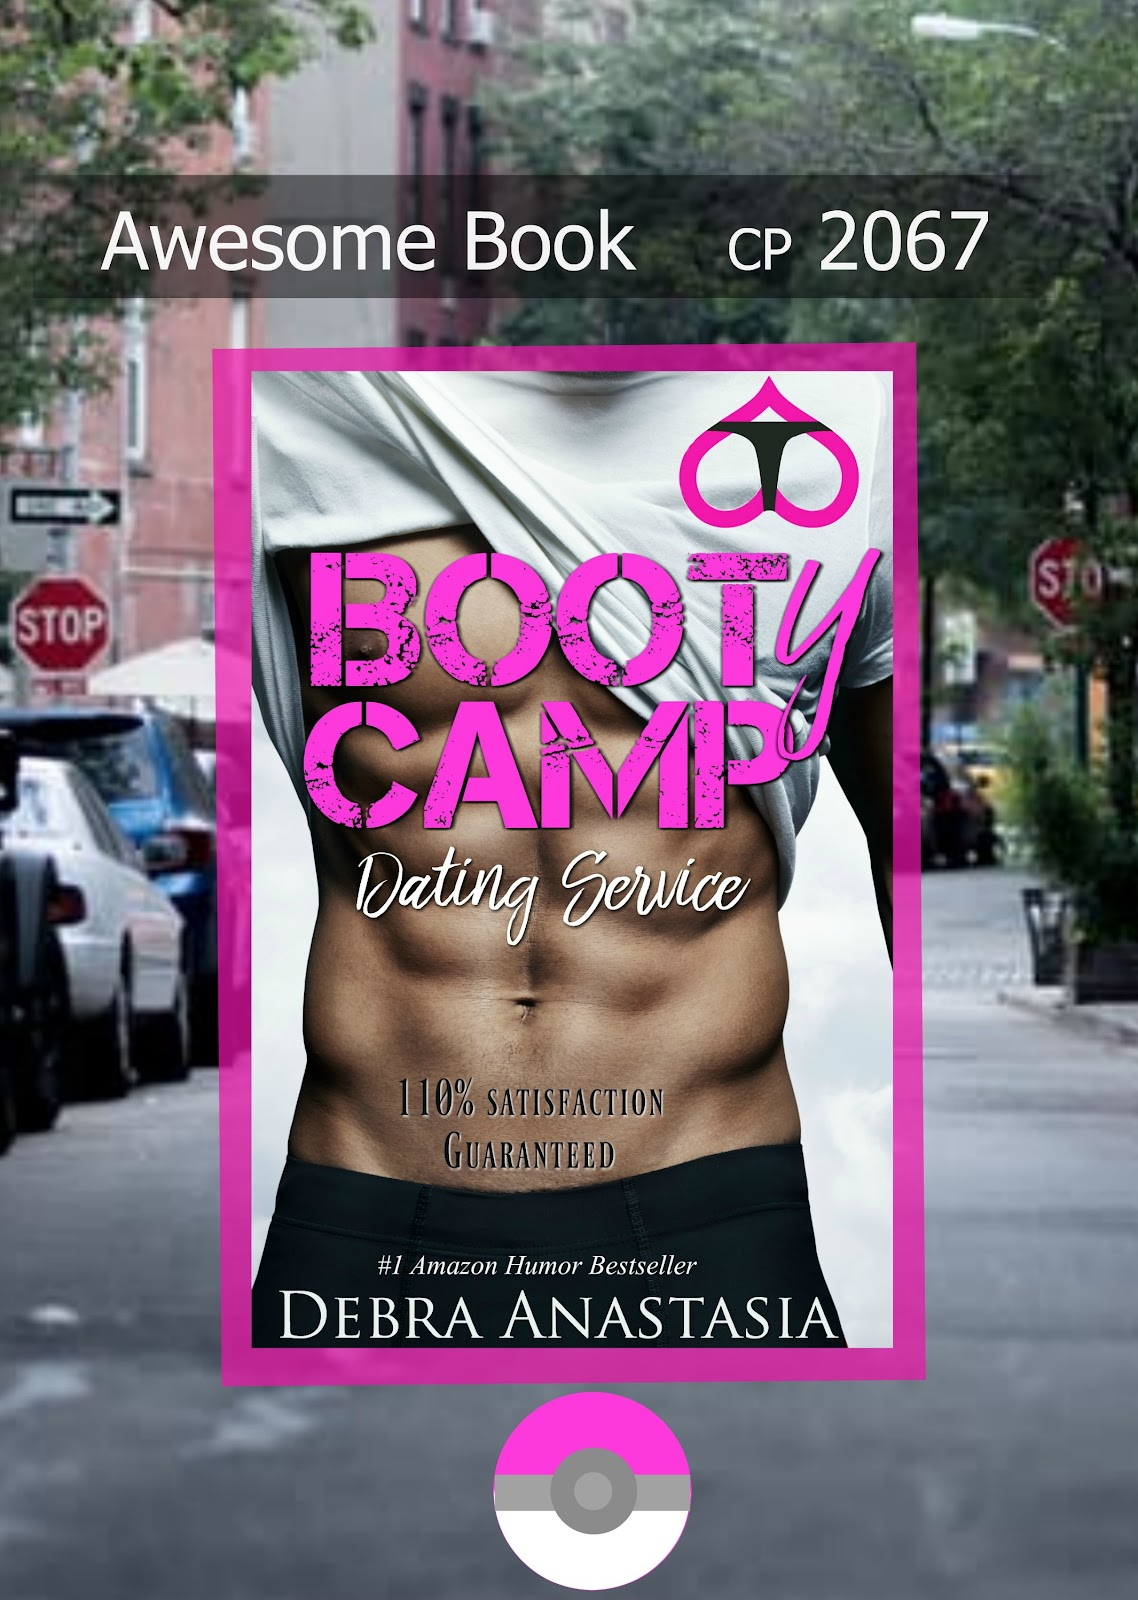 Awesome Book Booty Camp GO.jpg